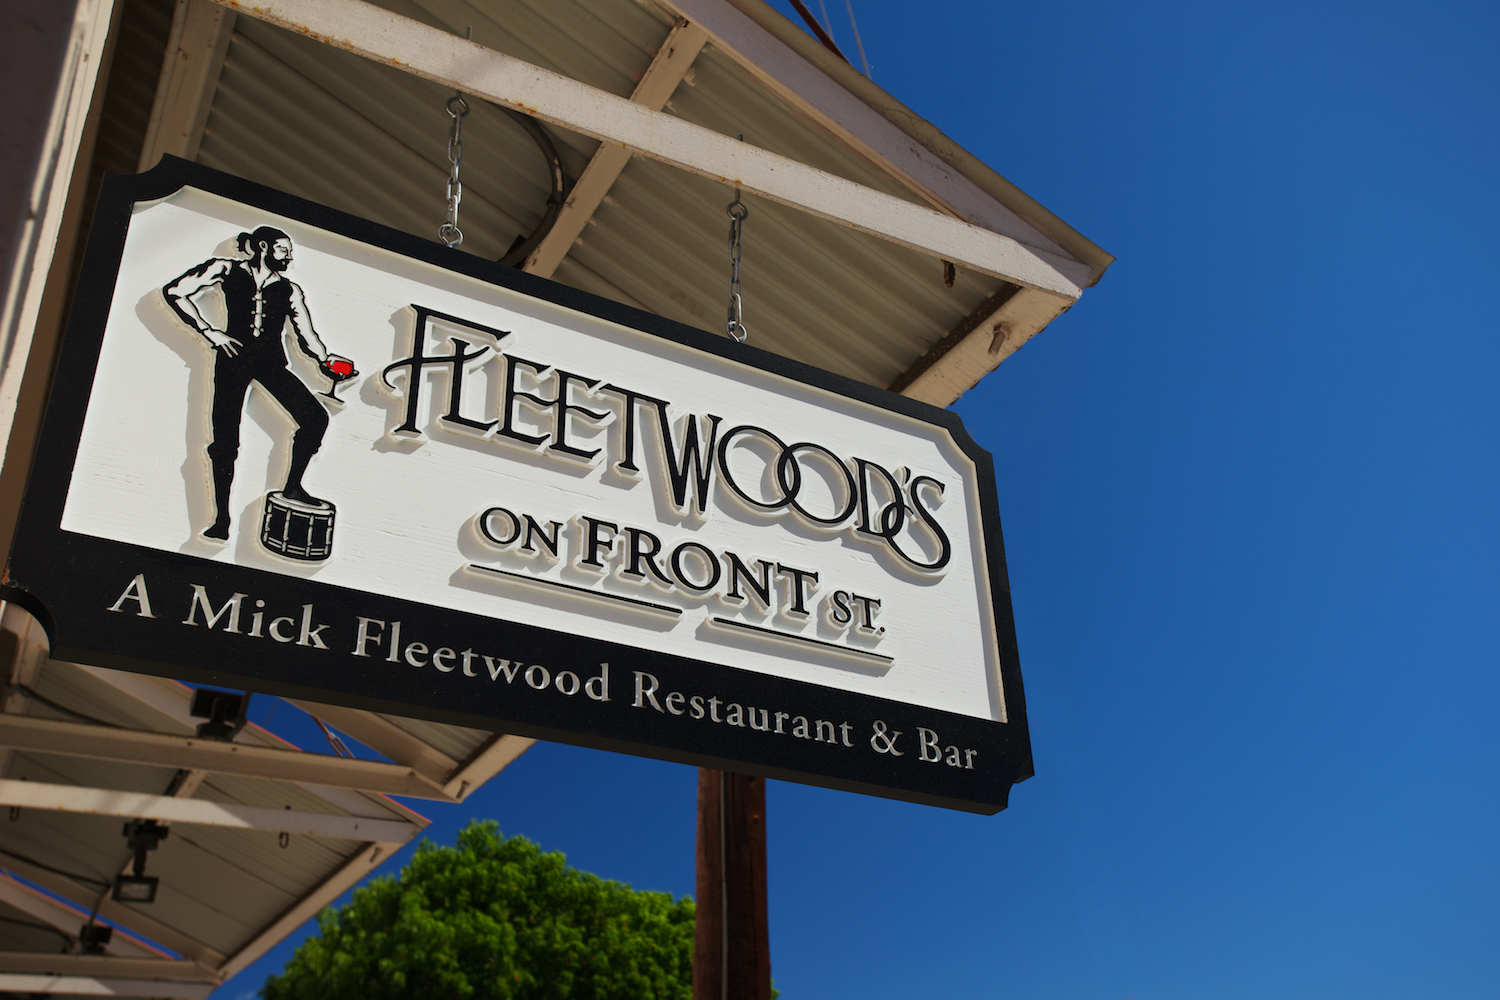 Fleetwoods096Hi-Res_full_size.jpg